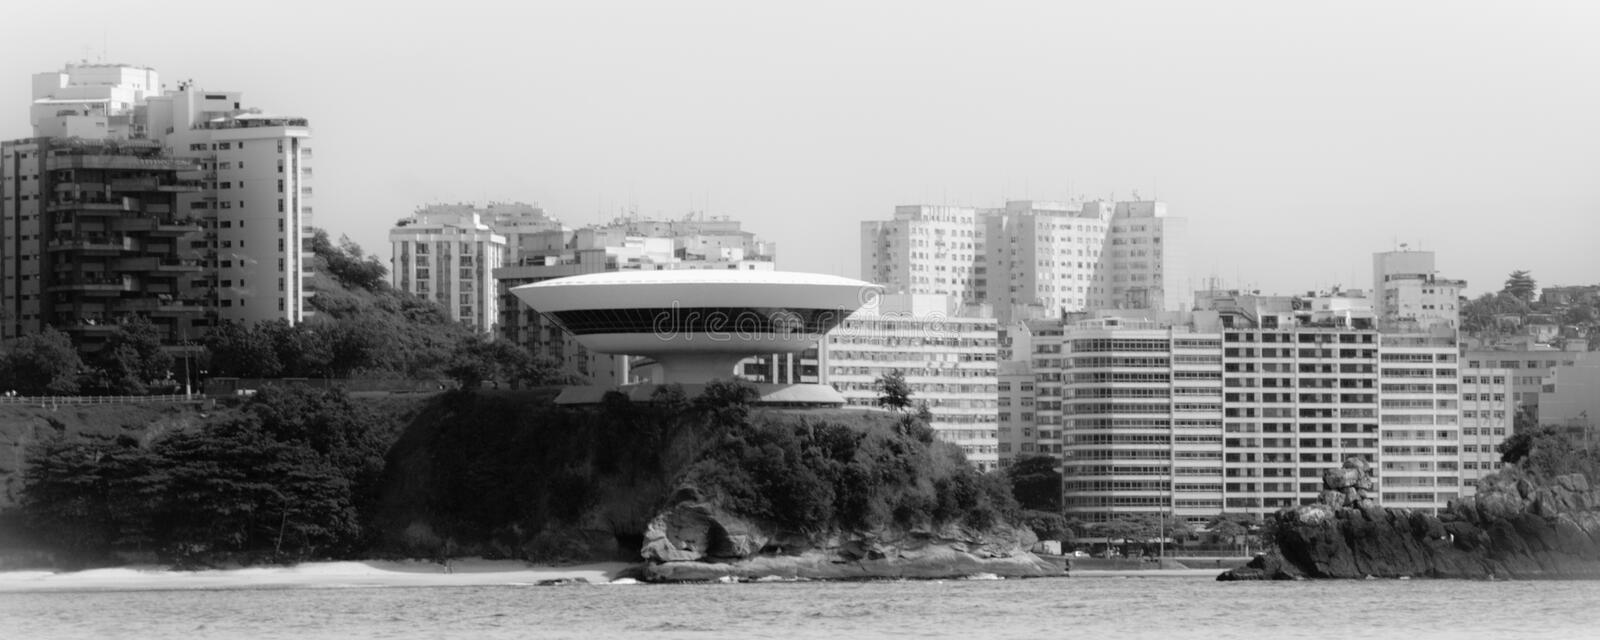 Download Contemporary Museum Of Art In The City Of Niteroi Stock Image - Image: 29435165